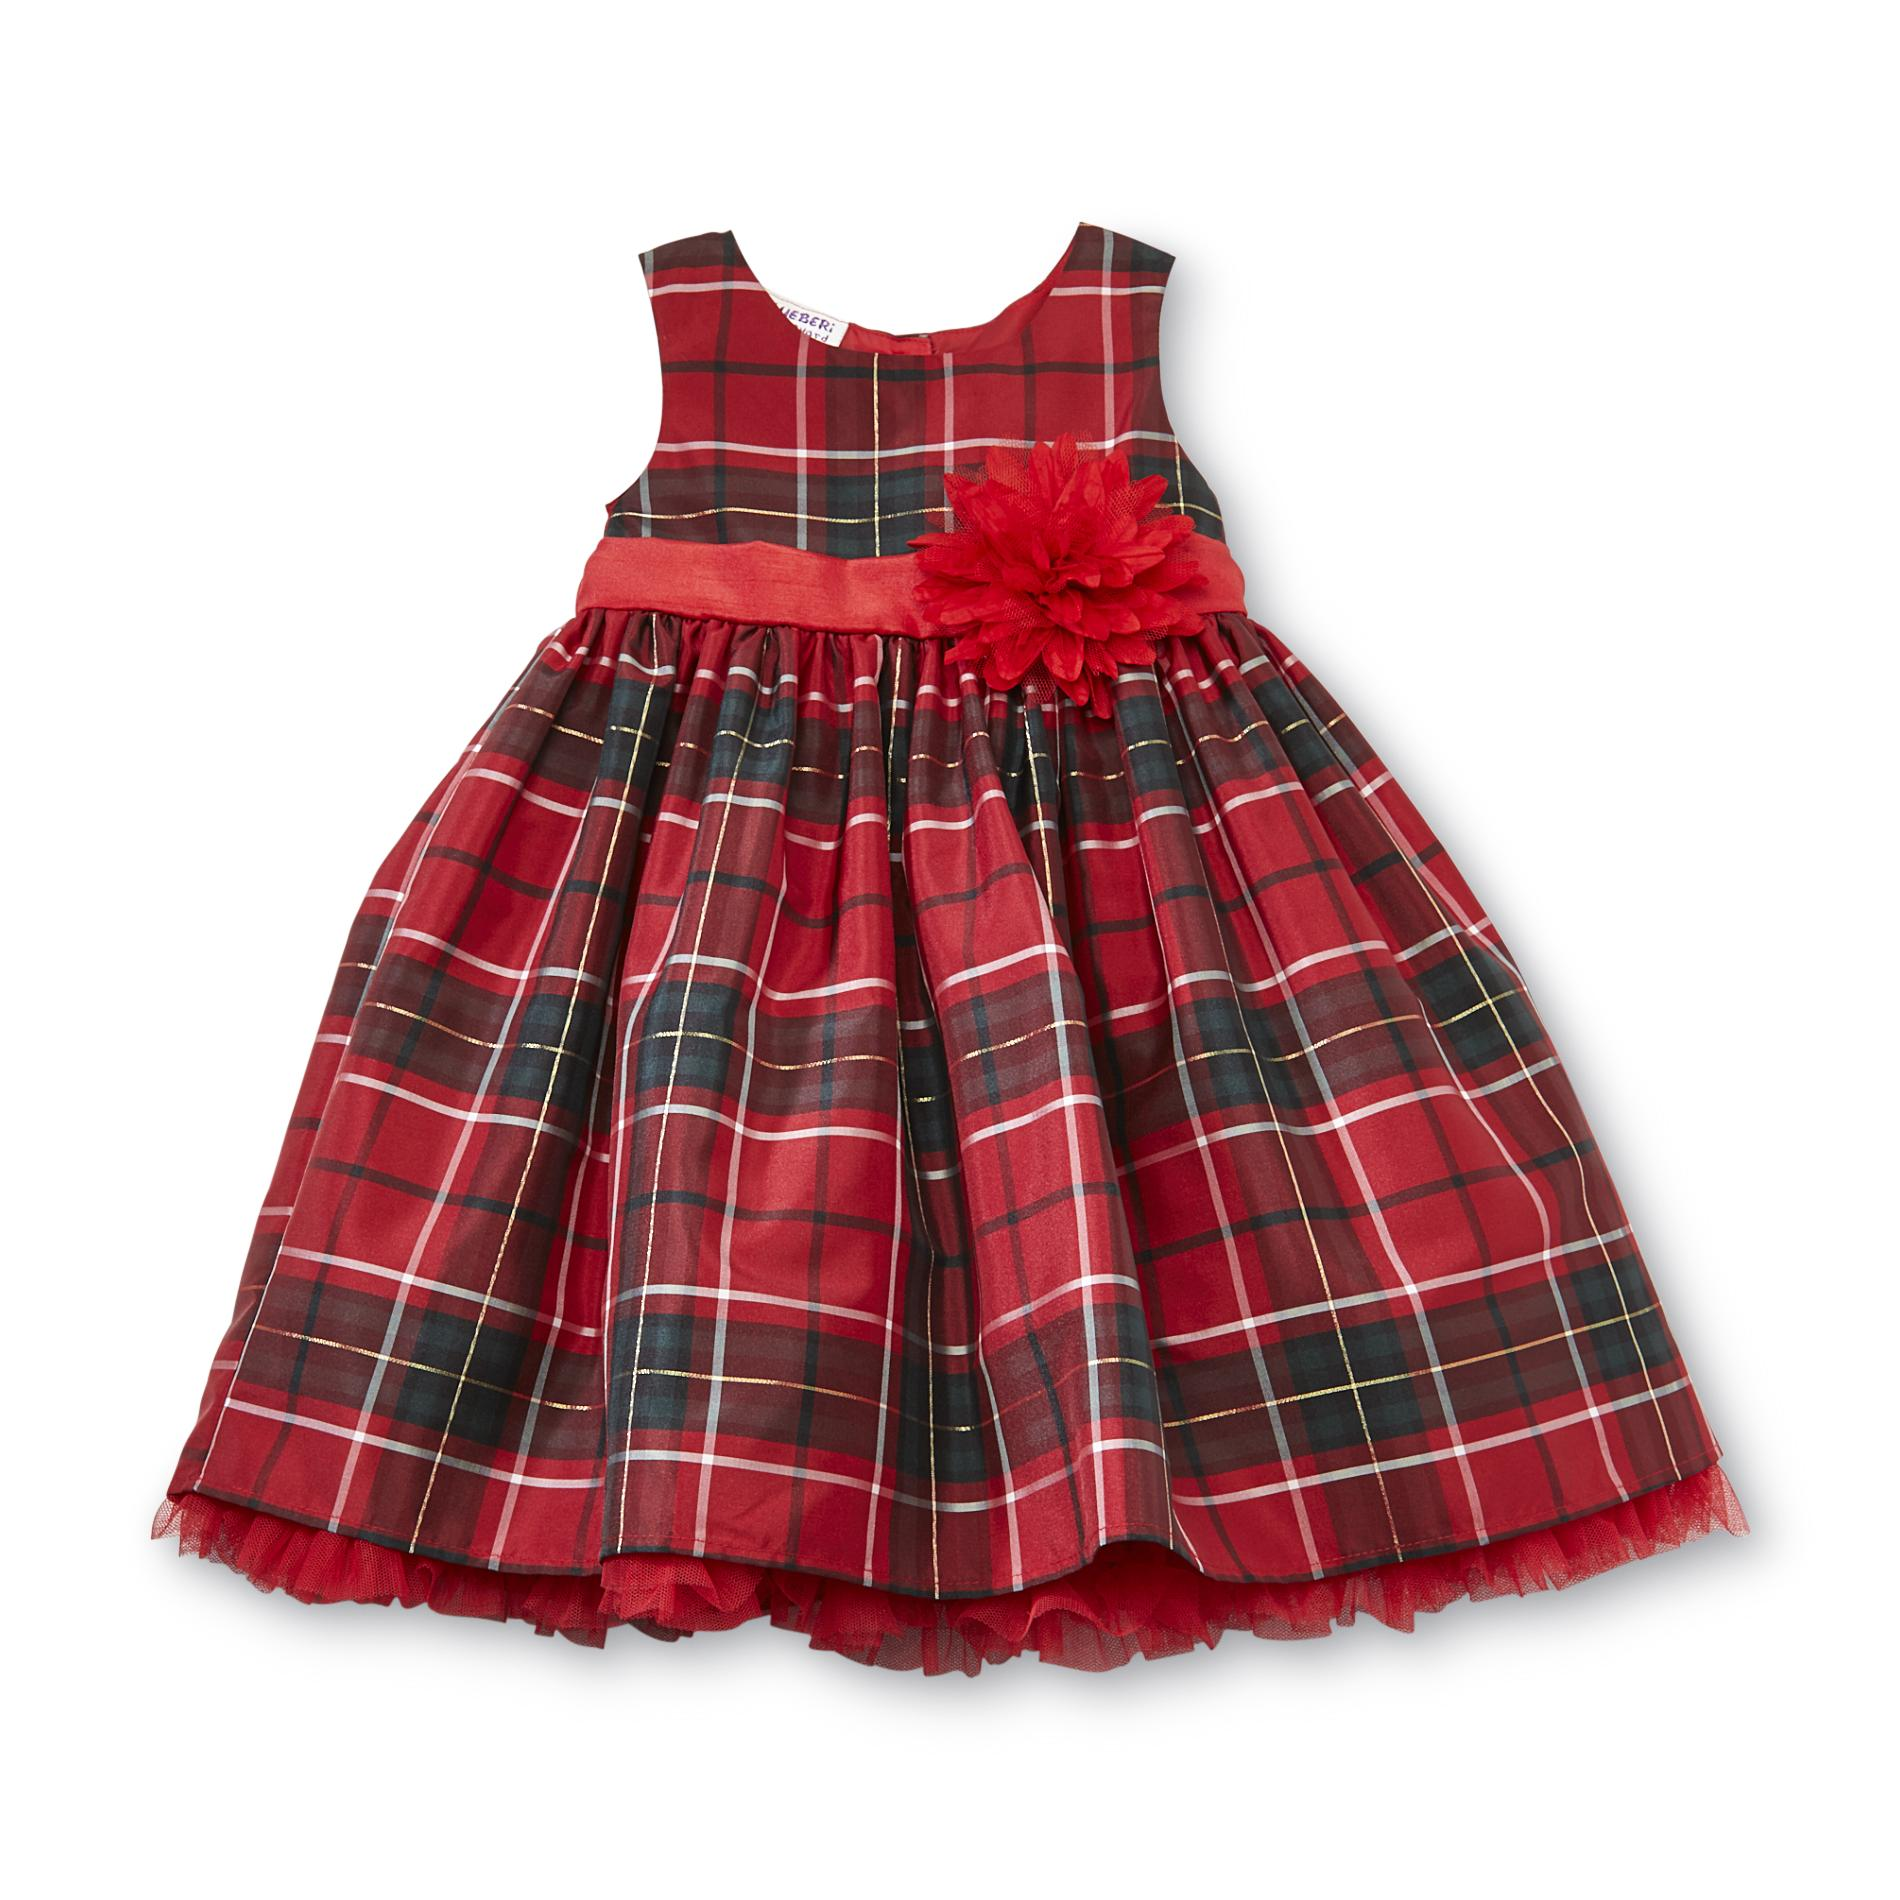 Infant & Toddler Girl's Dress - Plaid